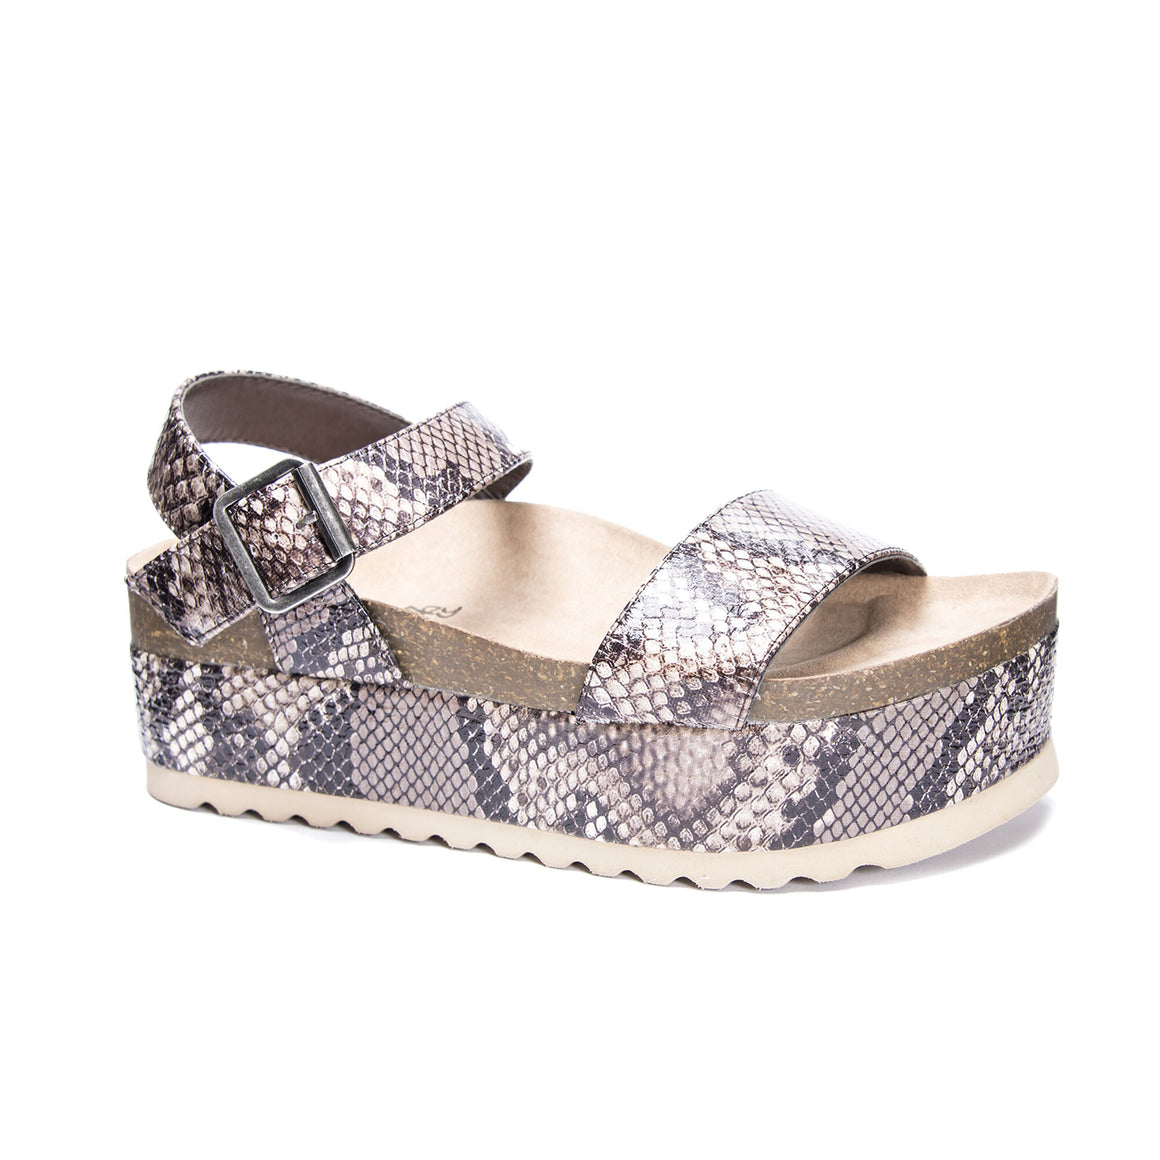 Dirty Laundry Women's Palms Platform Sandal - Lt. Brown Snake